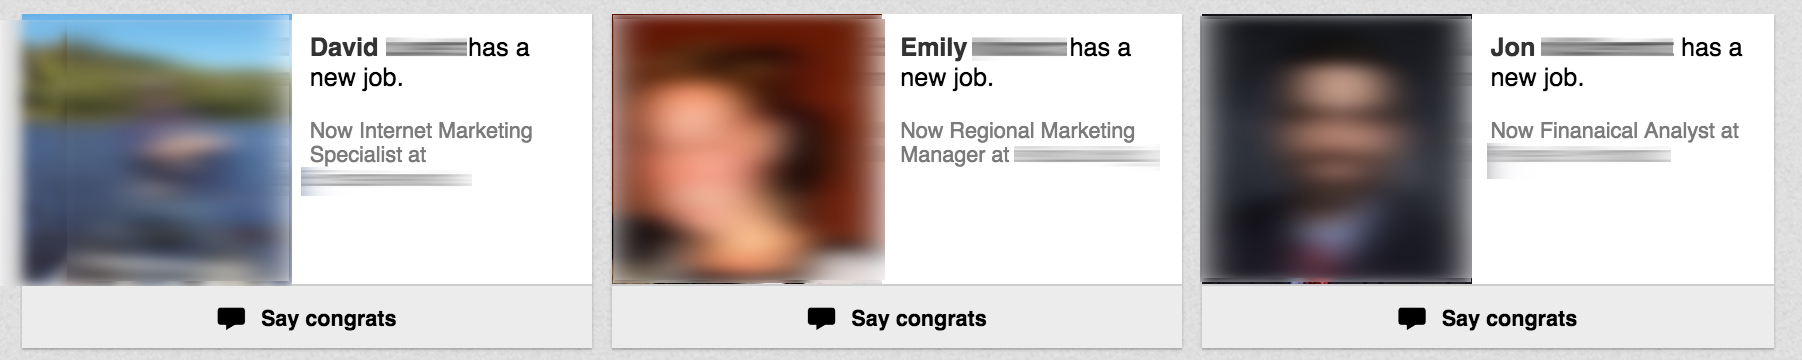 New Connections on Linkedin that Have Changed Jobs